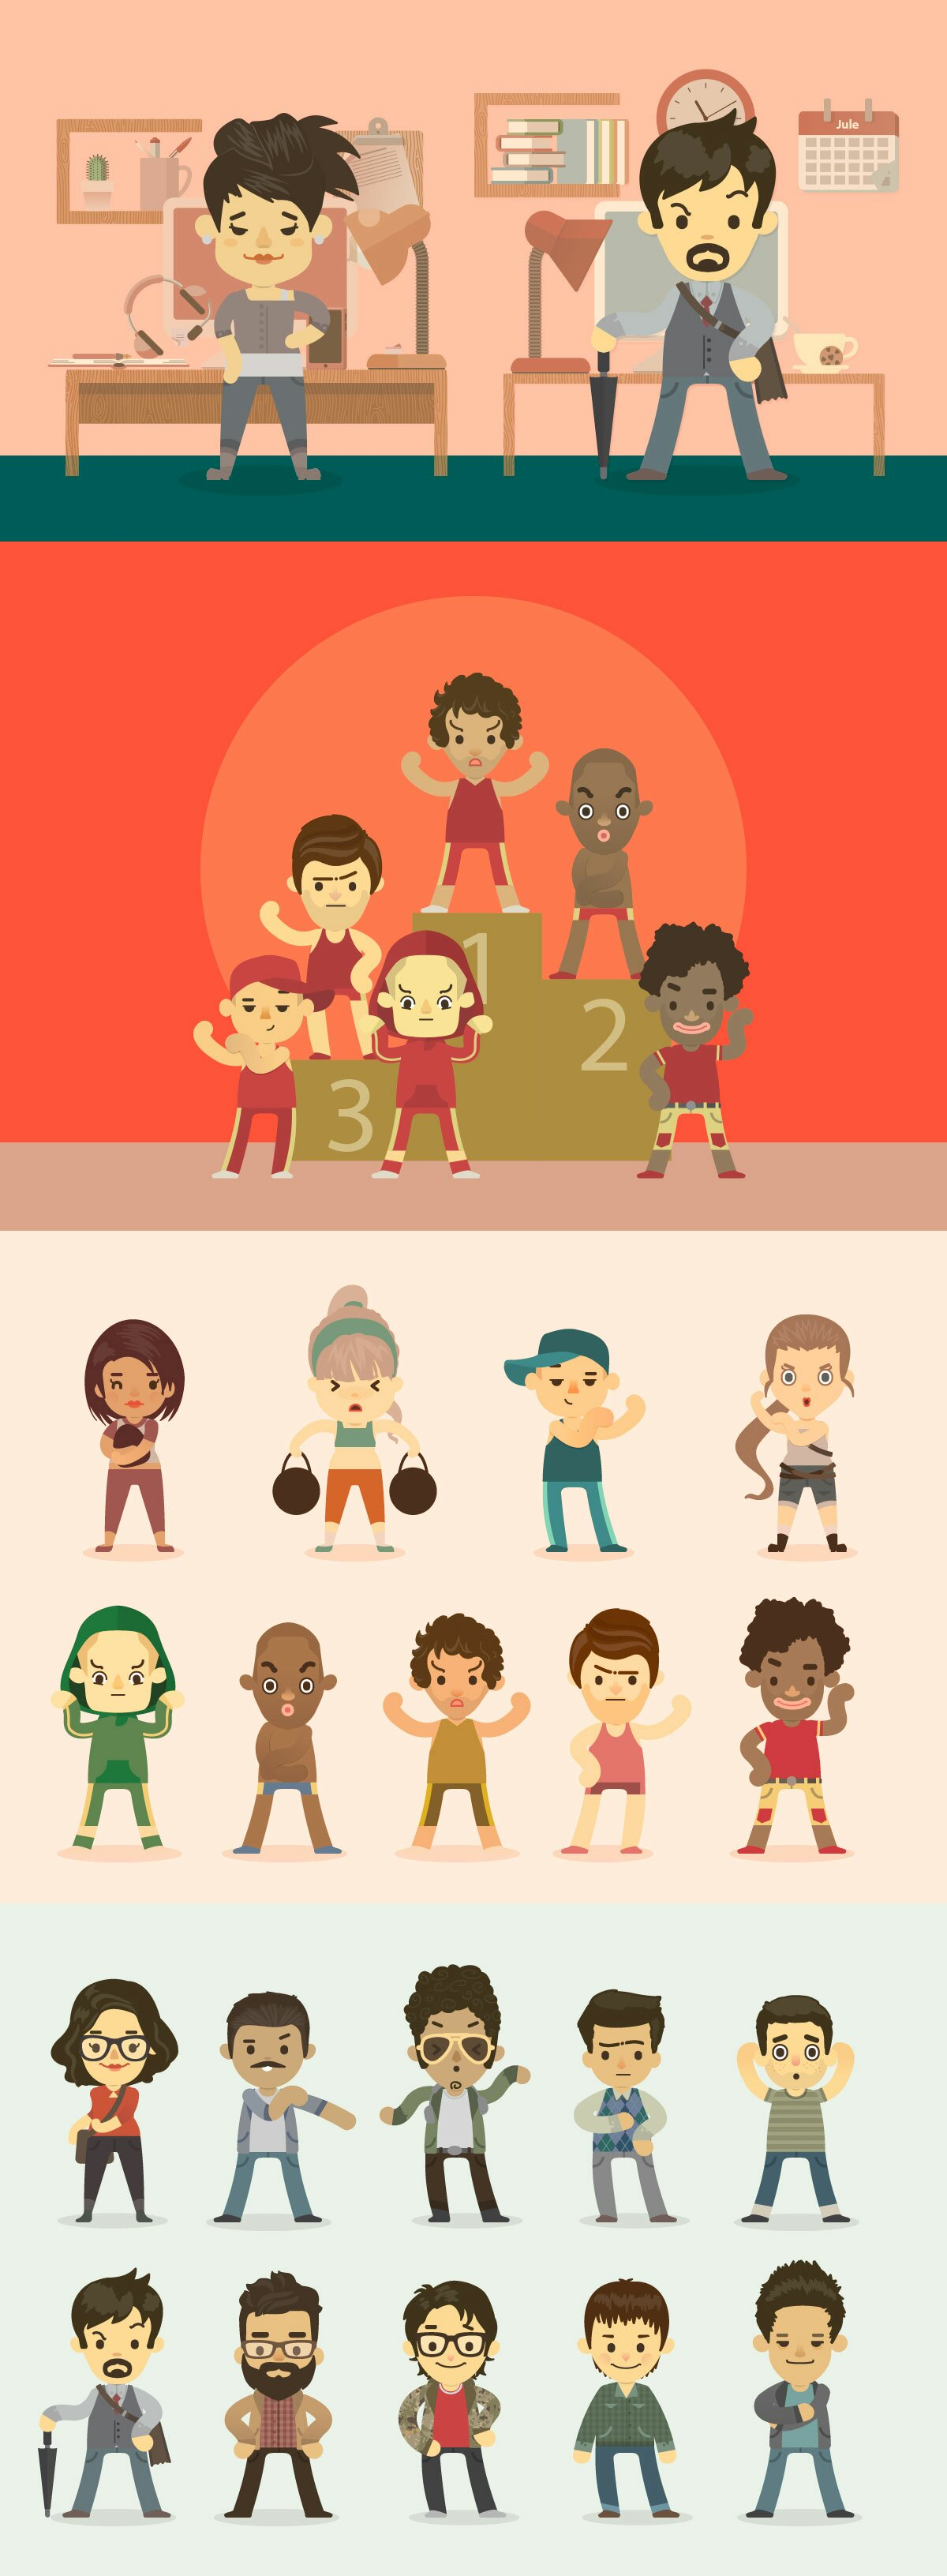 Cute Cartoon Avatar and Character Generator